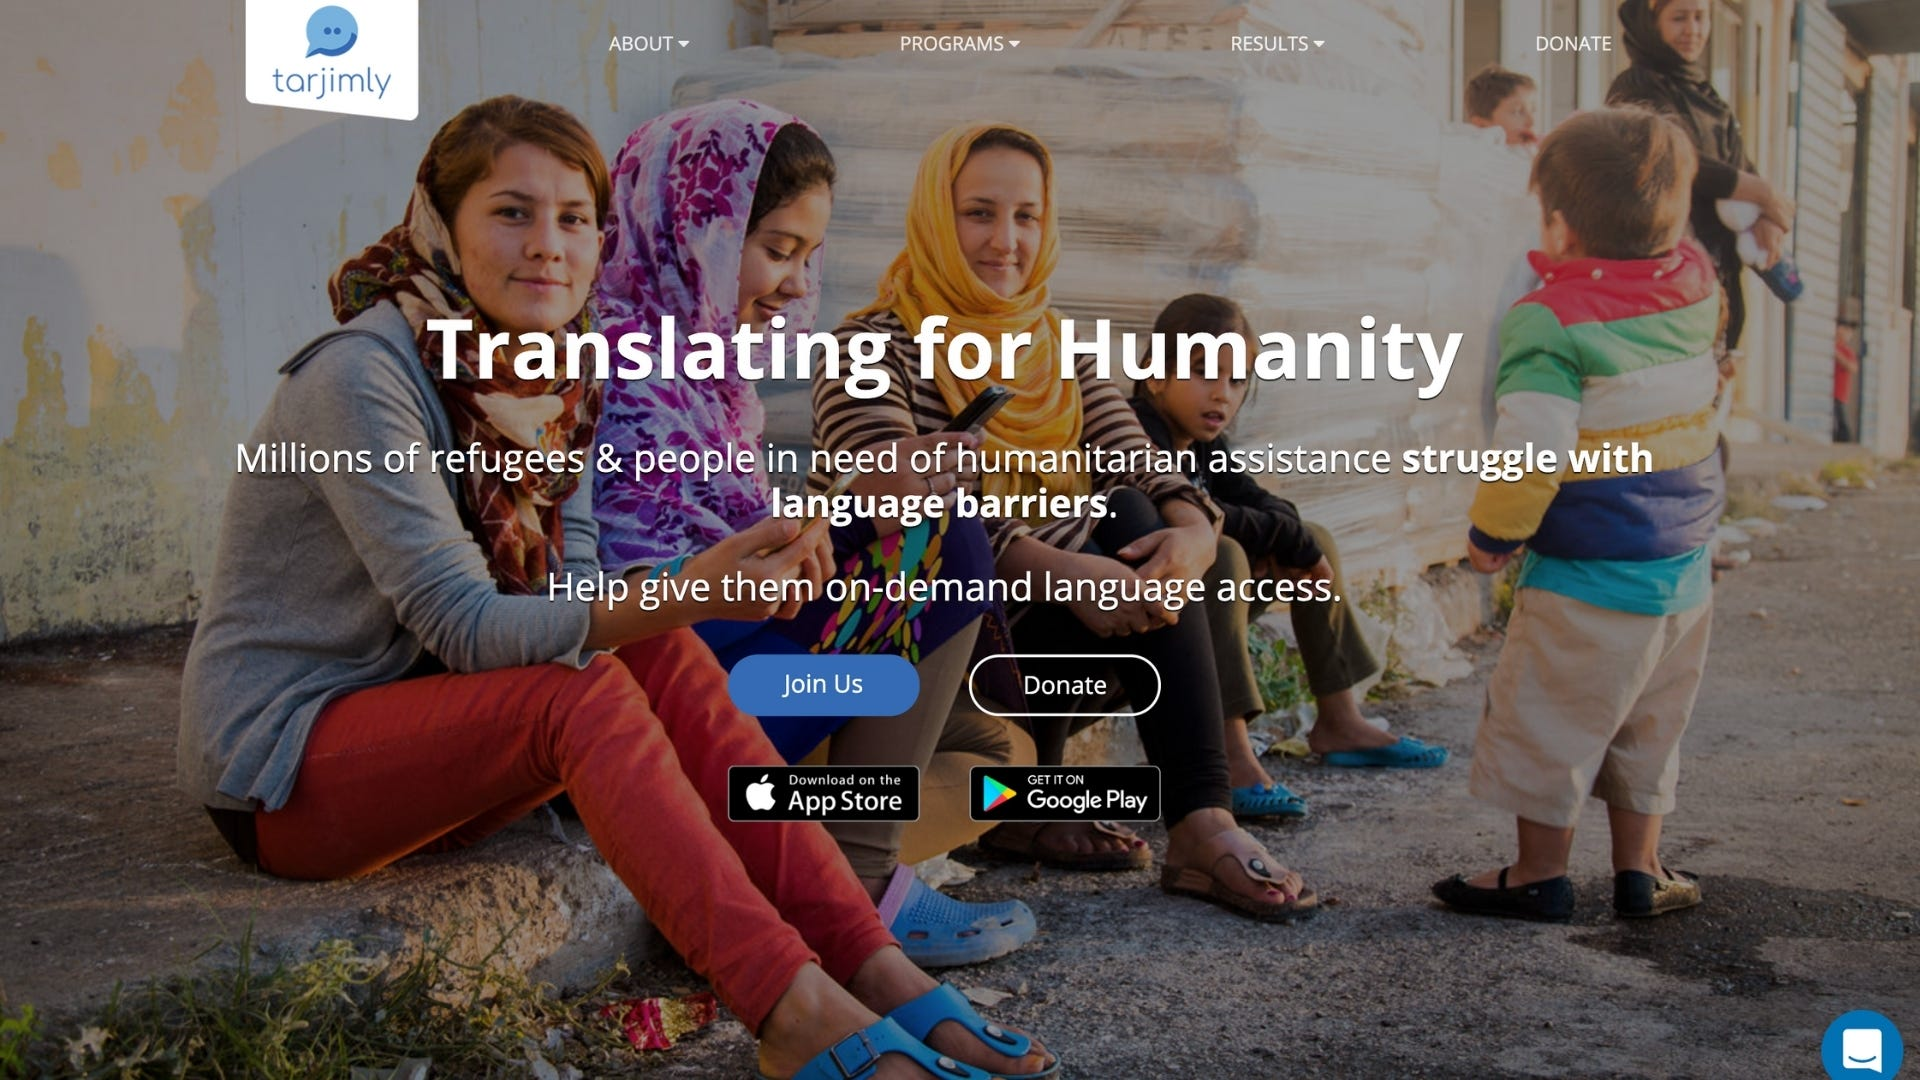 Homepage of the Tarjimly website with a female refugee smiling at the camera.